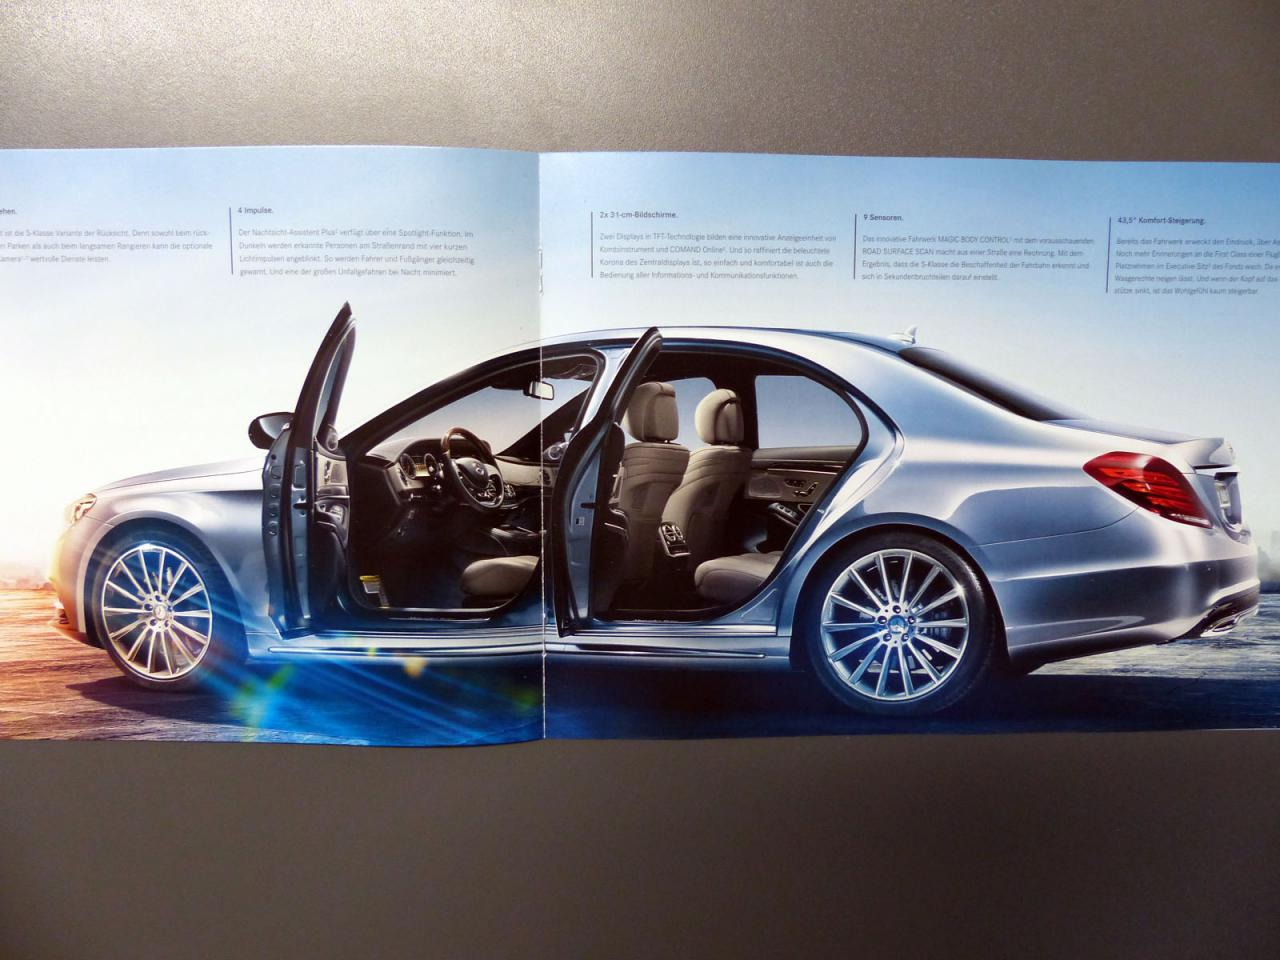 New details on the 2014 Mercedes S-Class surface